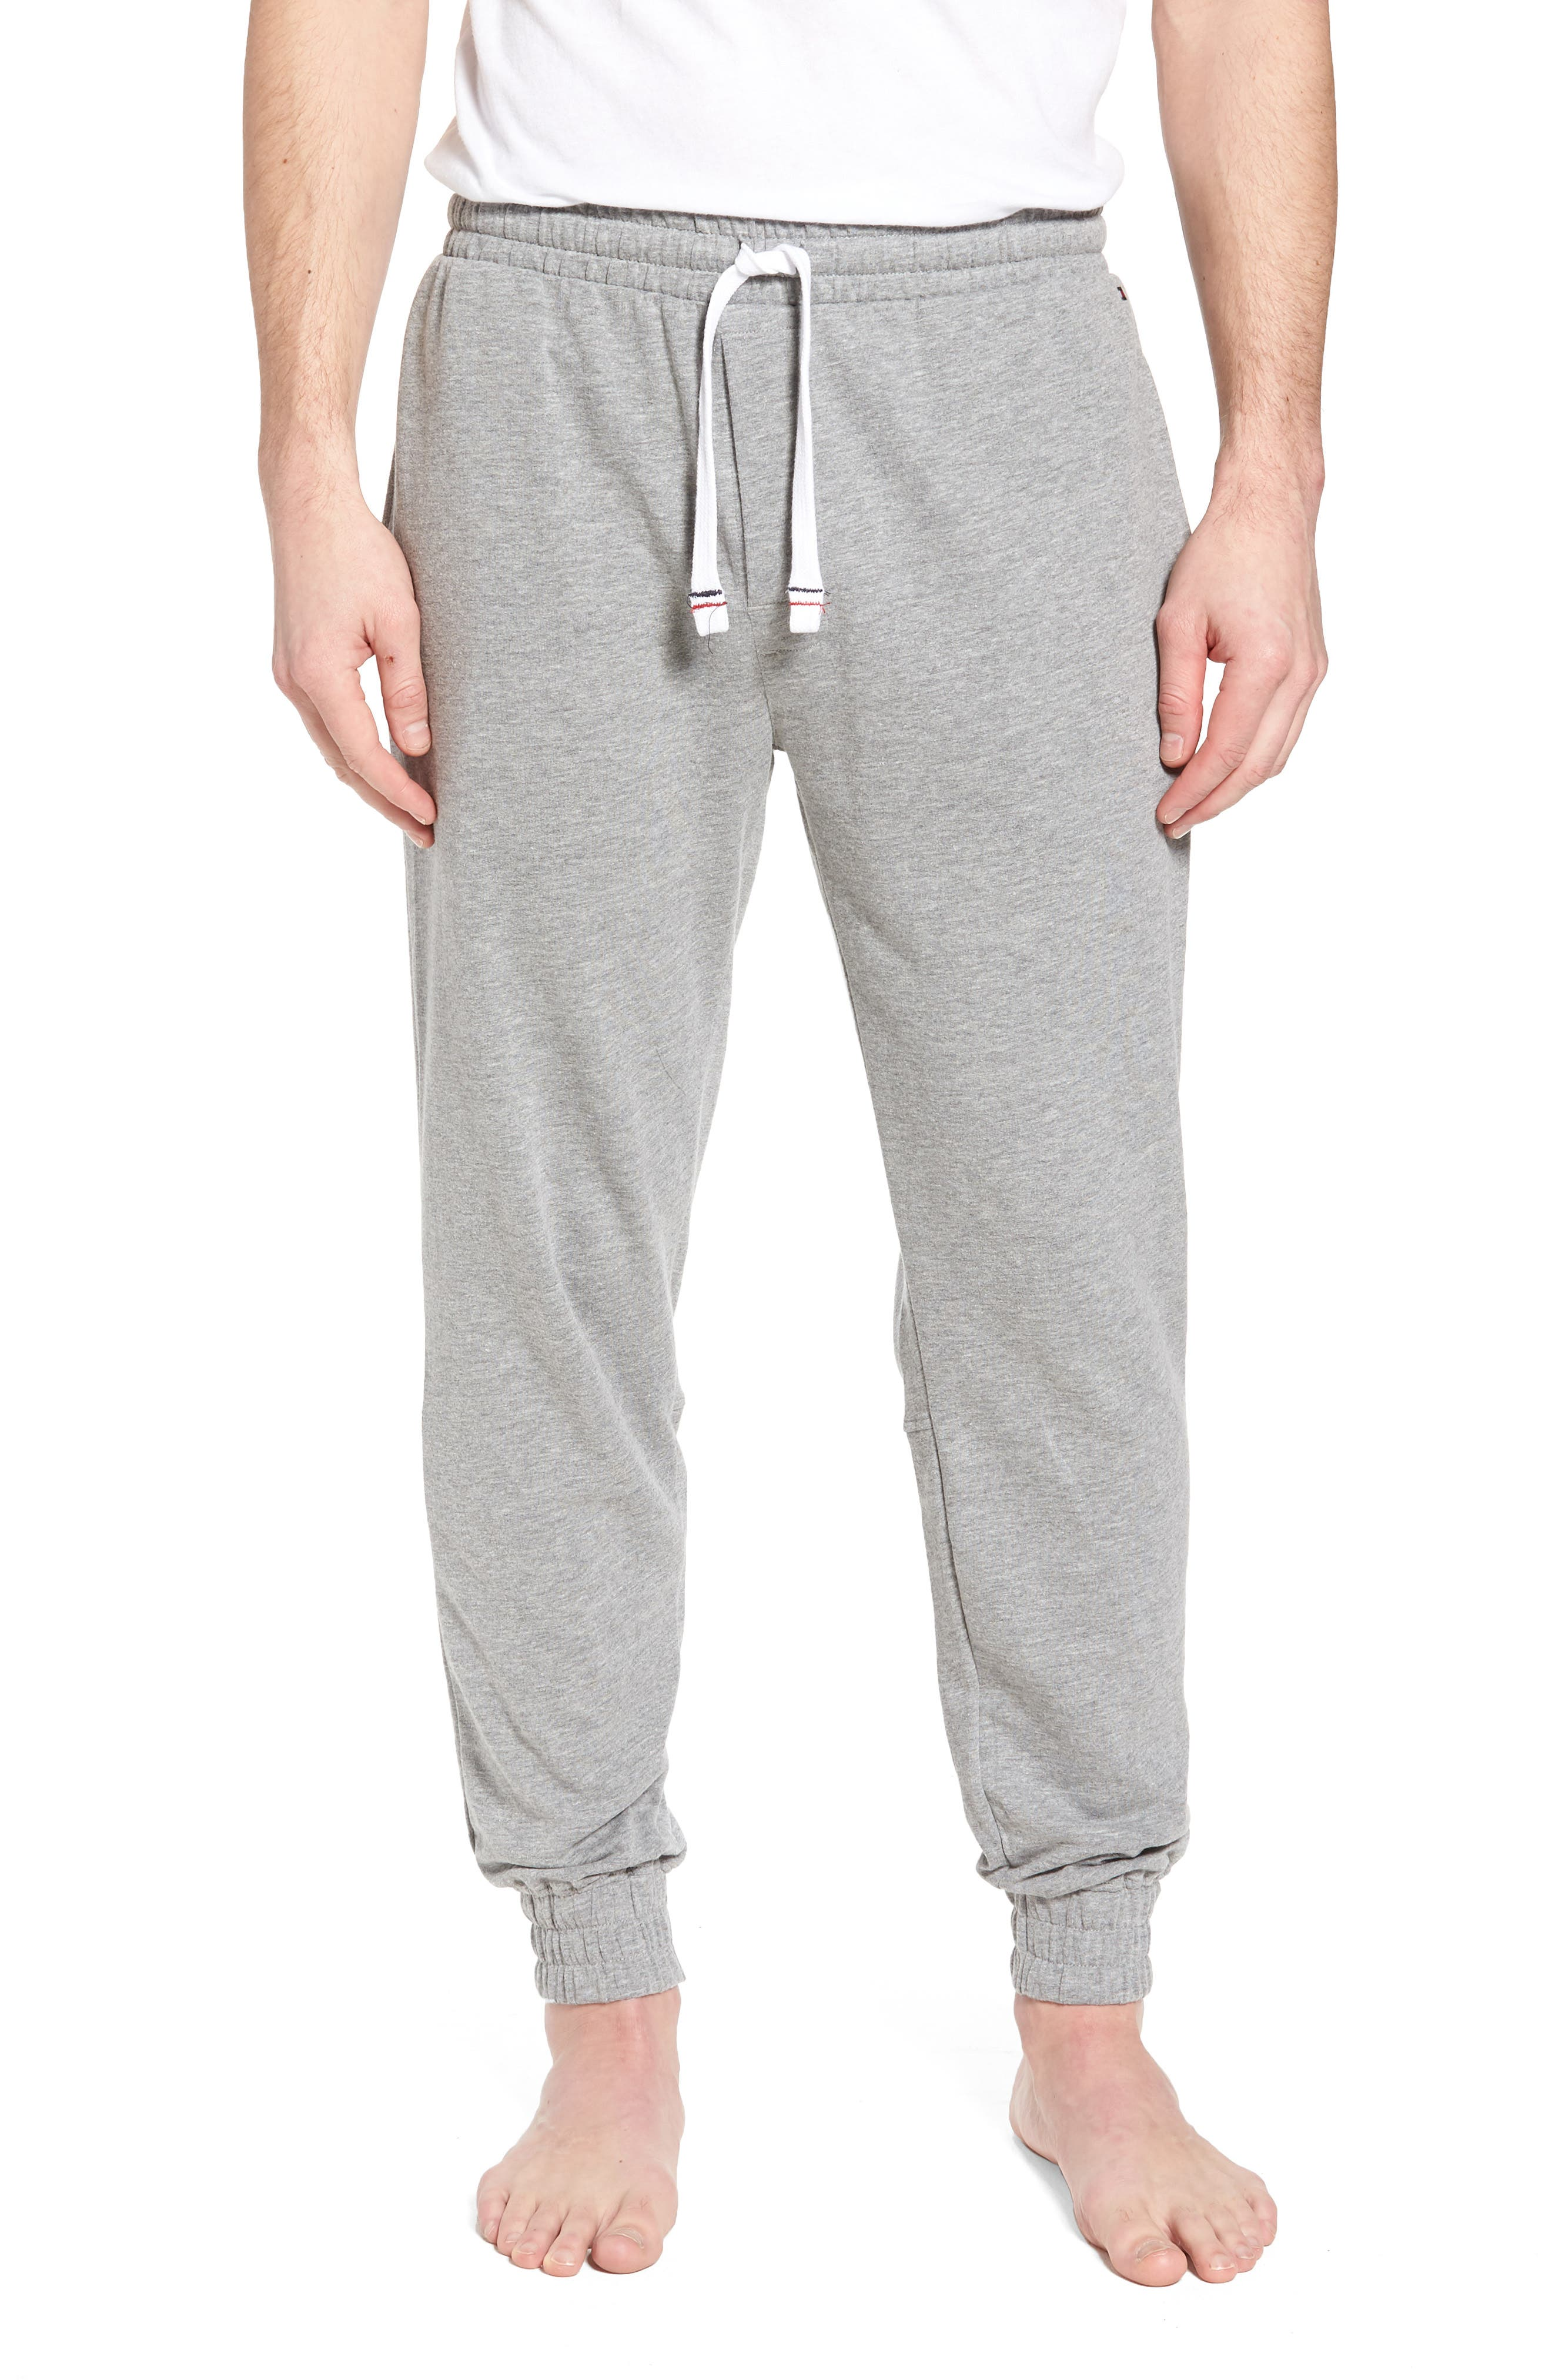 Jogger Lounge Pants,                         Main,                         color, Grey Heather